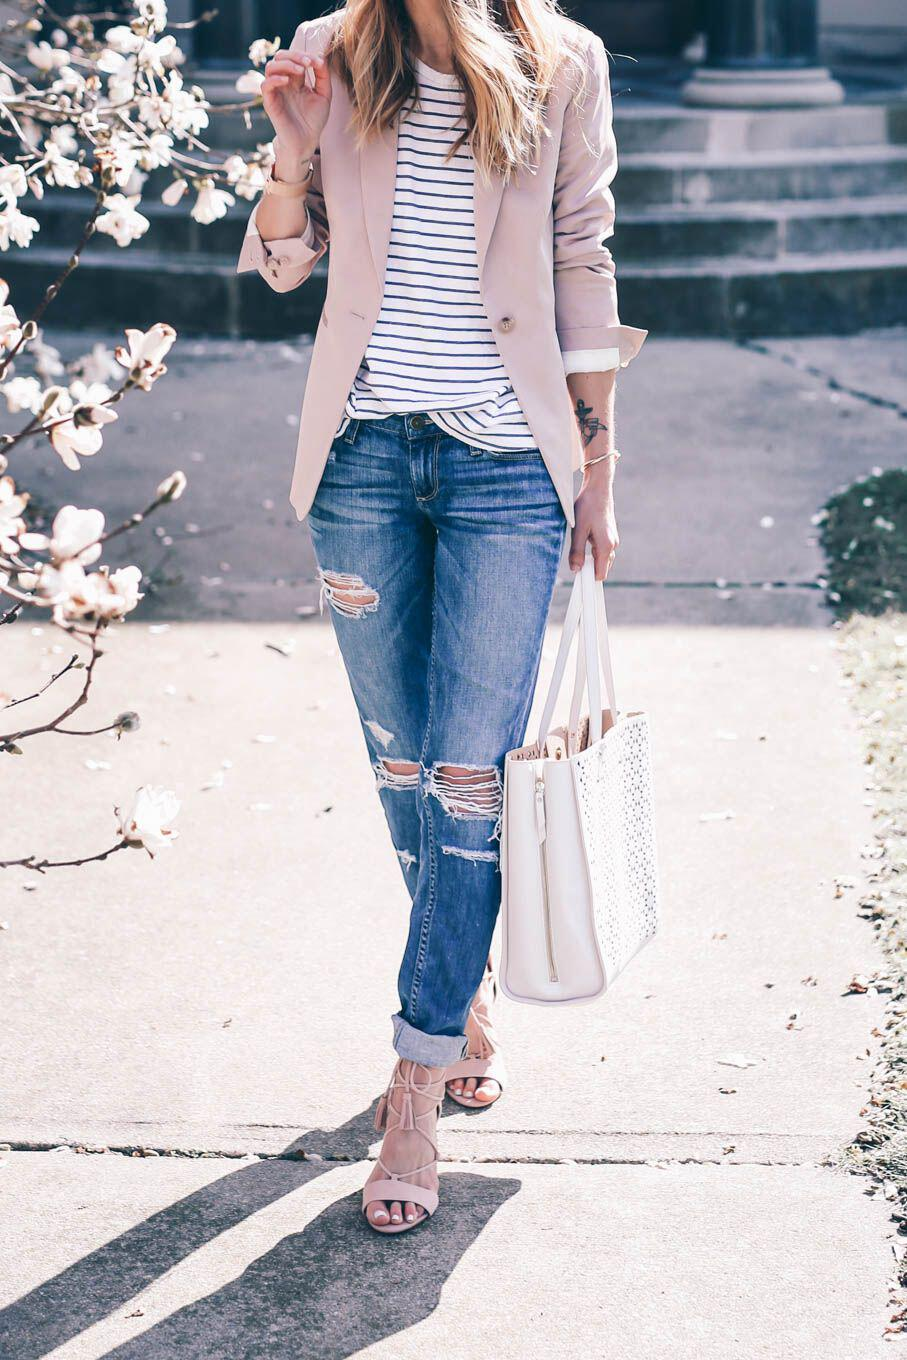 14 beautiful spring outfits with a striped top 12 - 14 beautiful spring outfits with a striped top